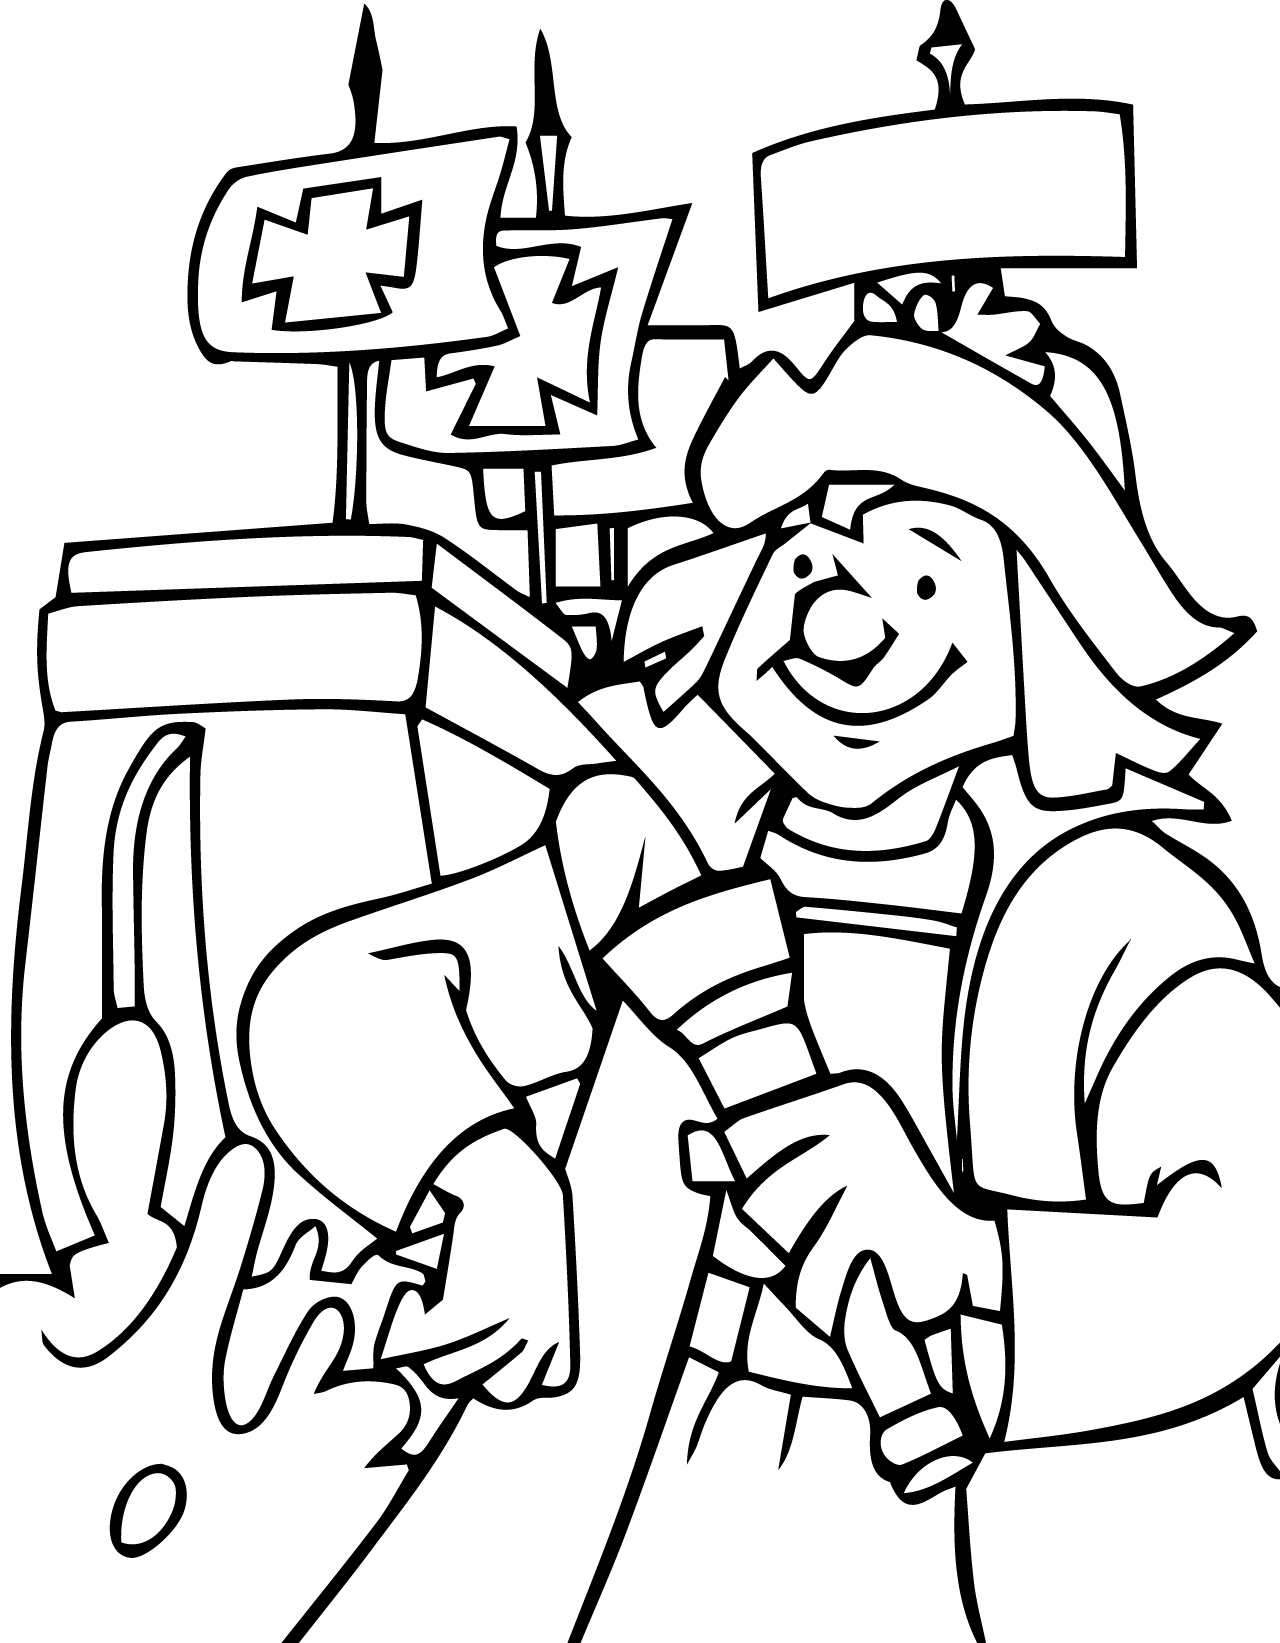 Christopher columbus coloring pages for Columbus coloring page